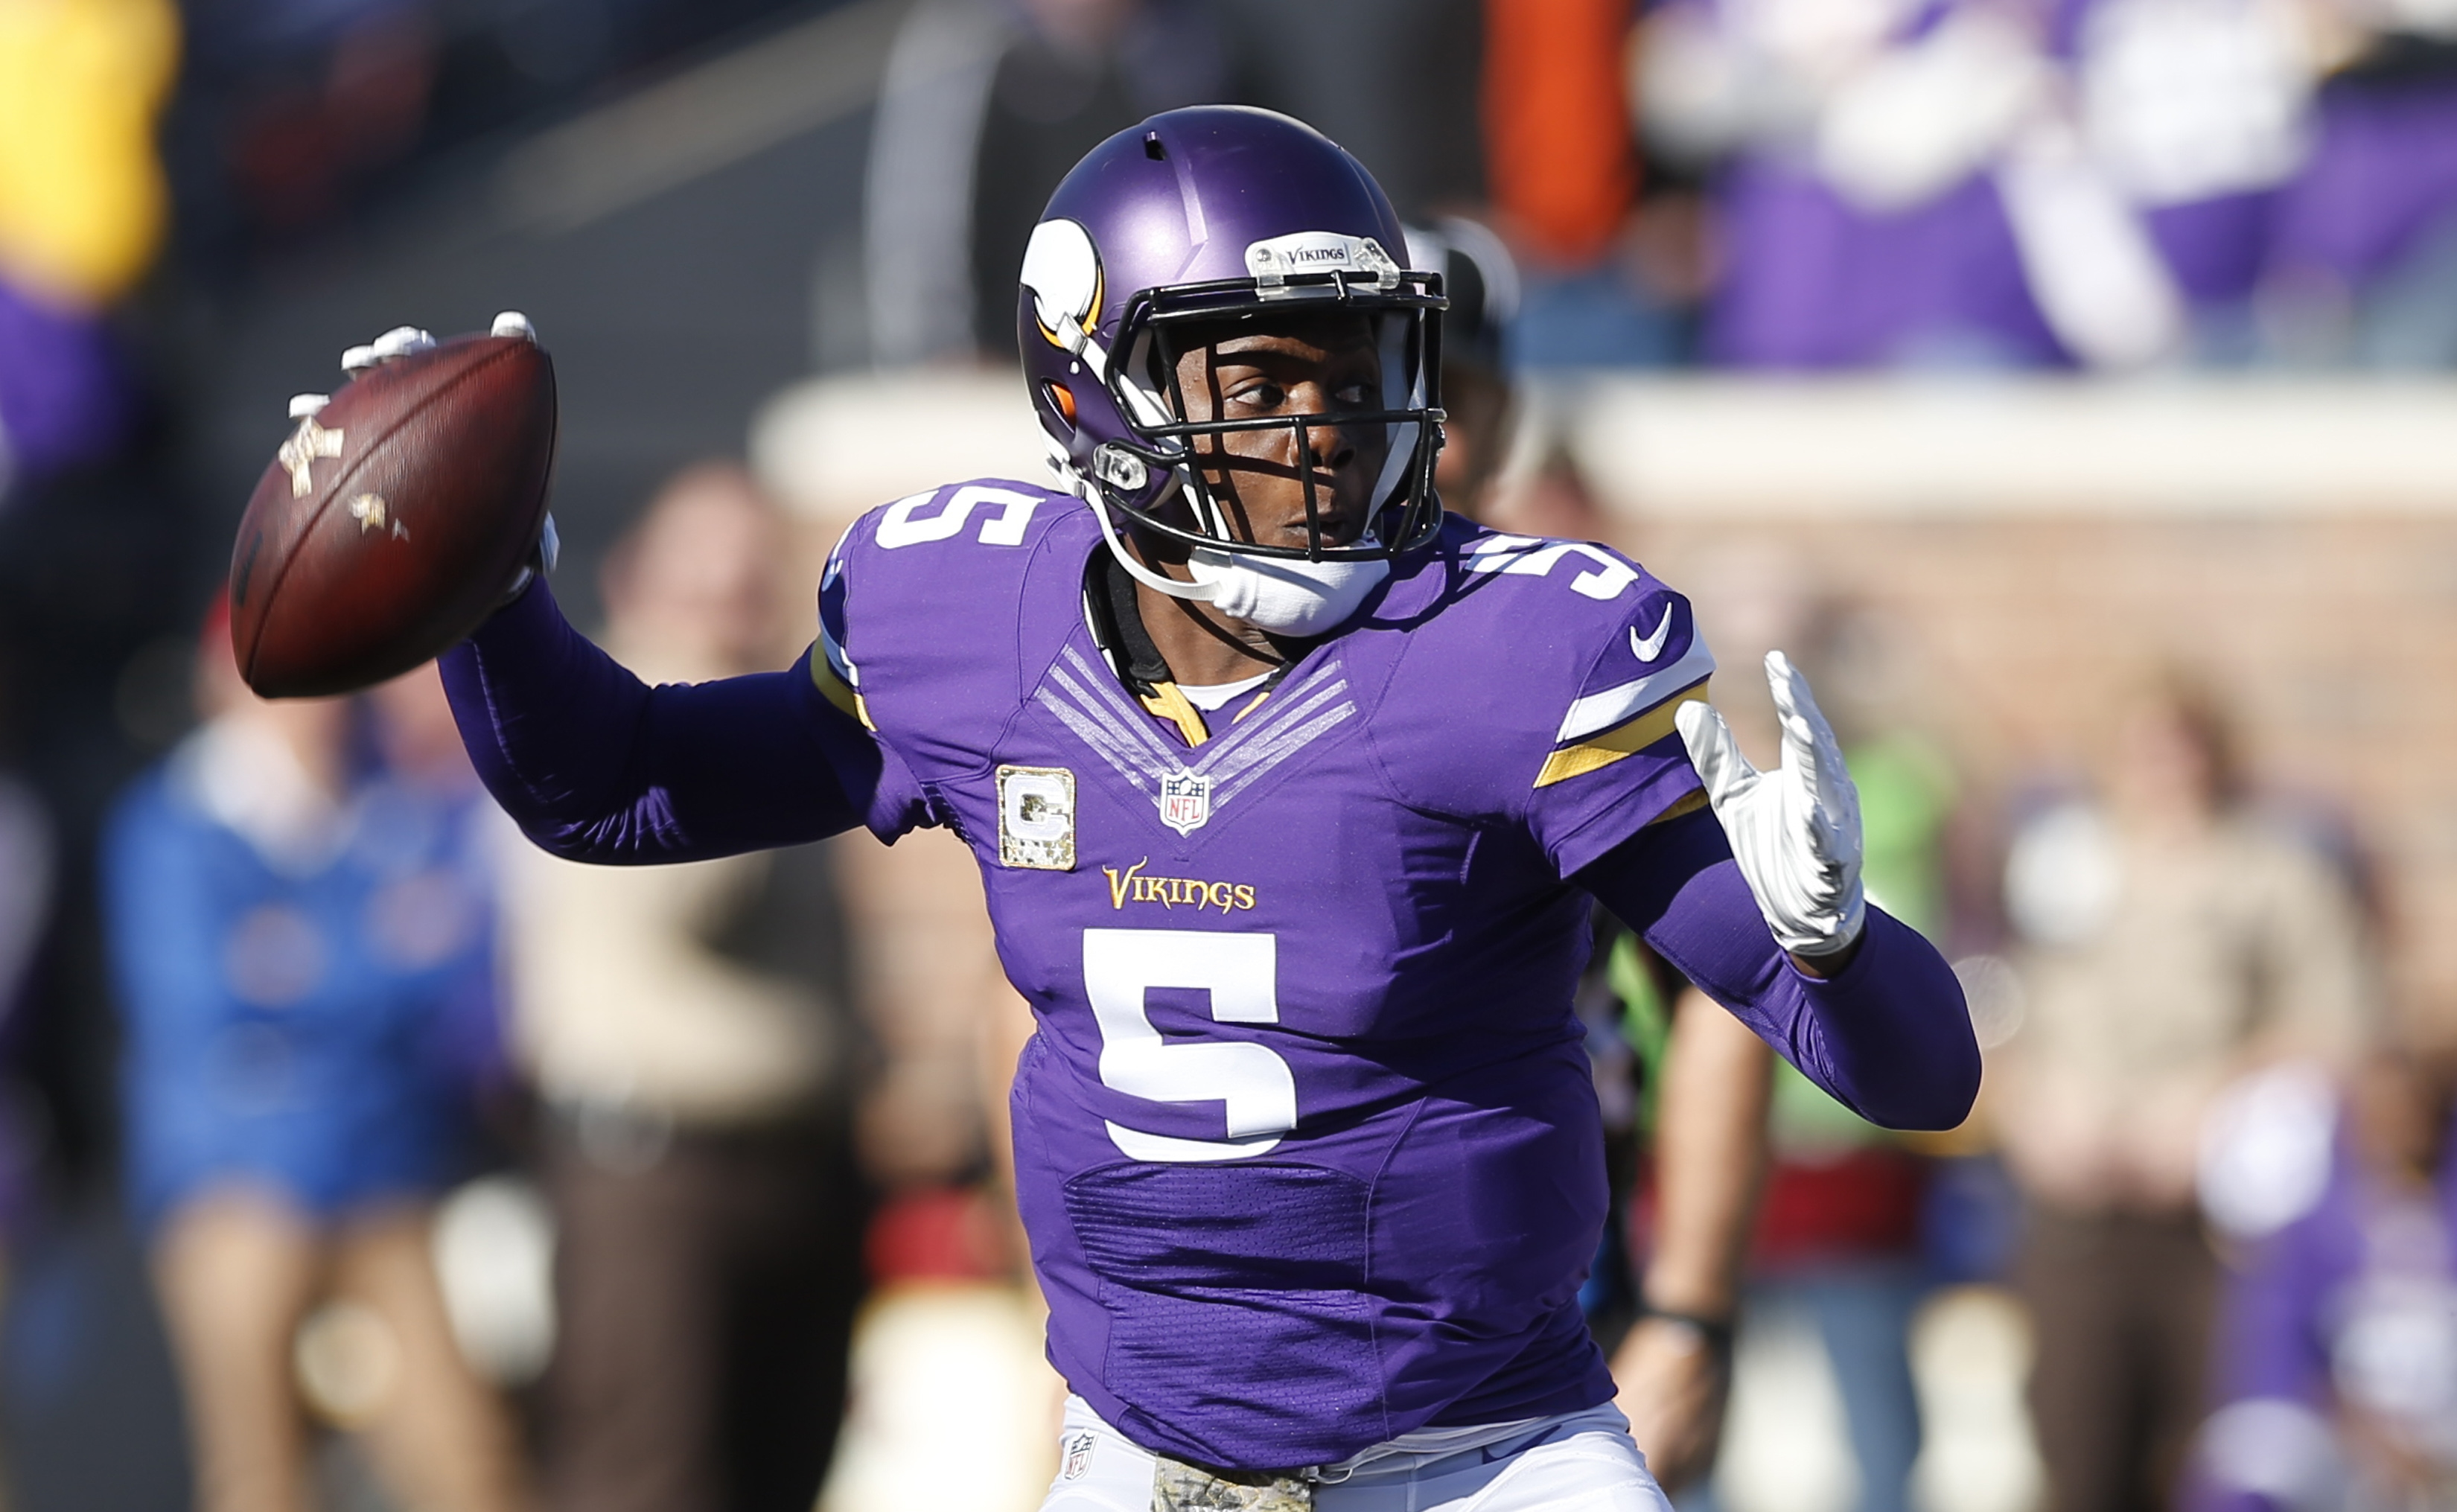 Minnesota Vikings quarterback Teddy Bridgewater prepares to throw during the first half of an NFL football game against the St. Louis Rams, Sunday, Nov. 8, 2015, in Minneapolis. (AP Photo/Jim Mone)